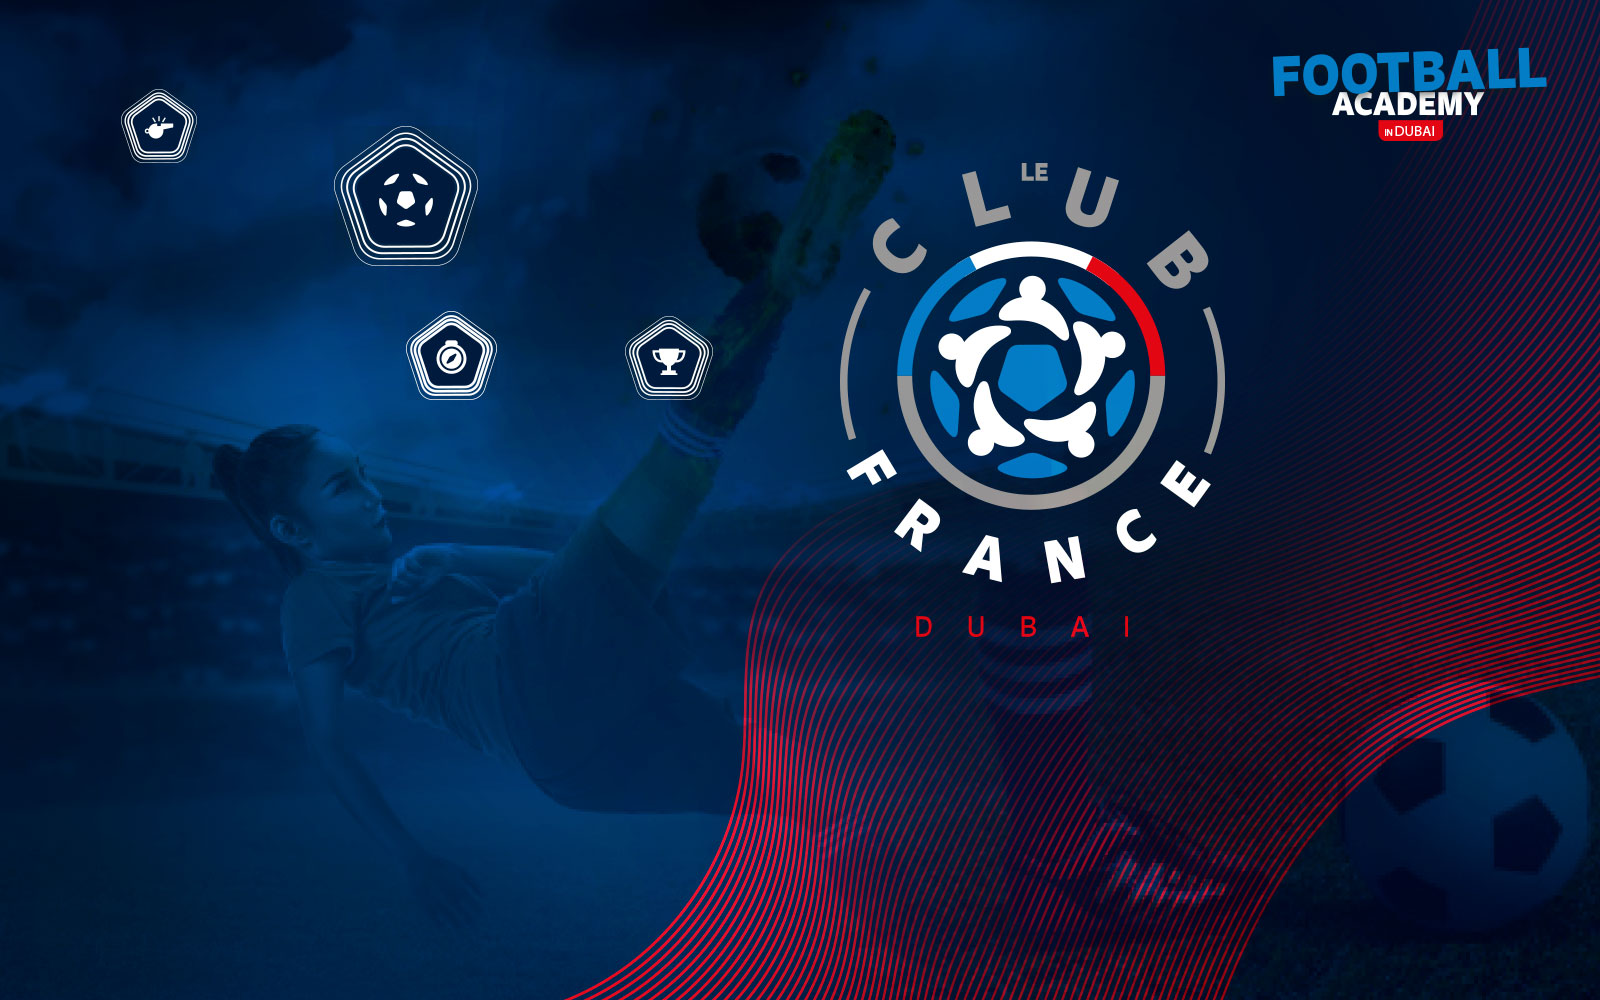 Le Club France Dubai